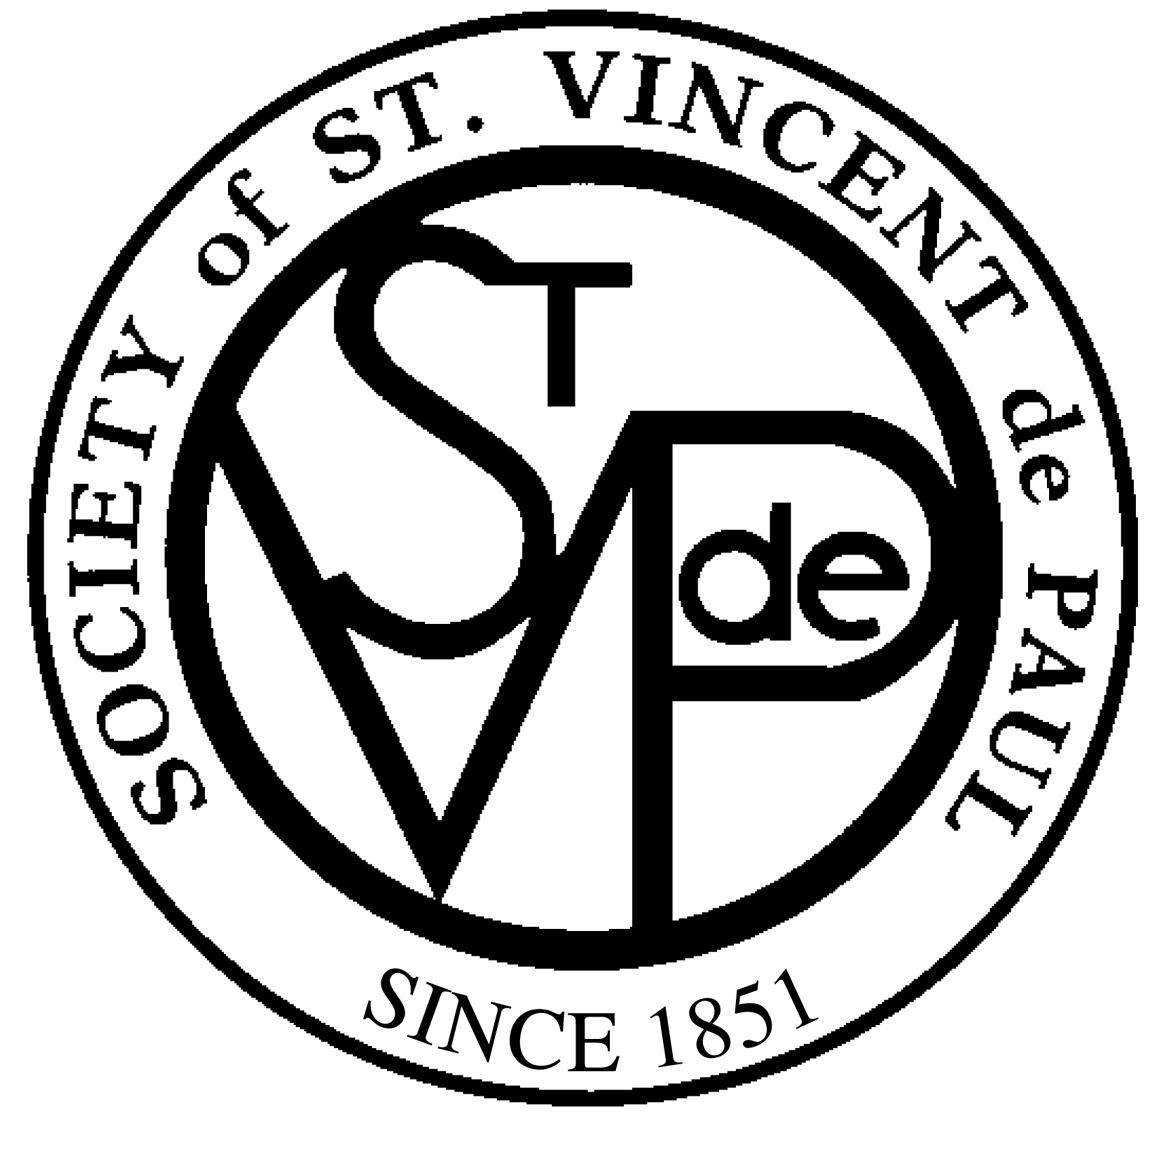 St Vincent de Paul - Ste Marie's Church Food Pantry